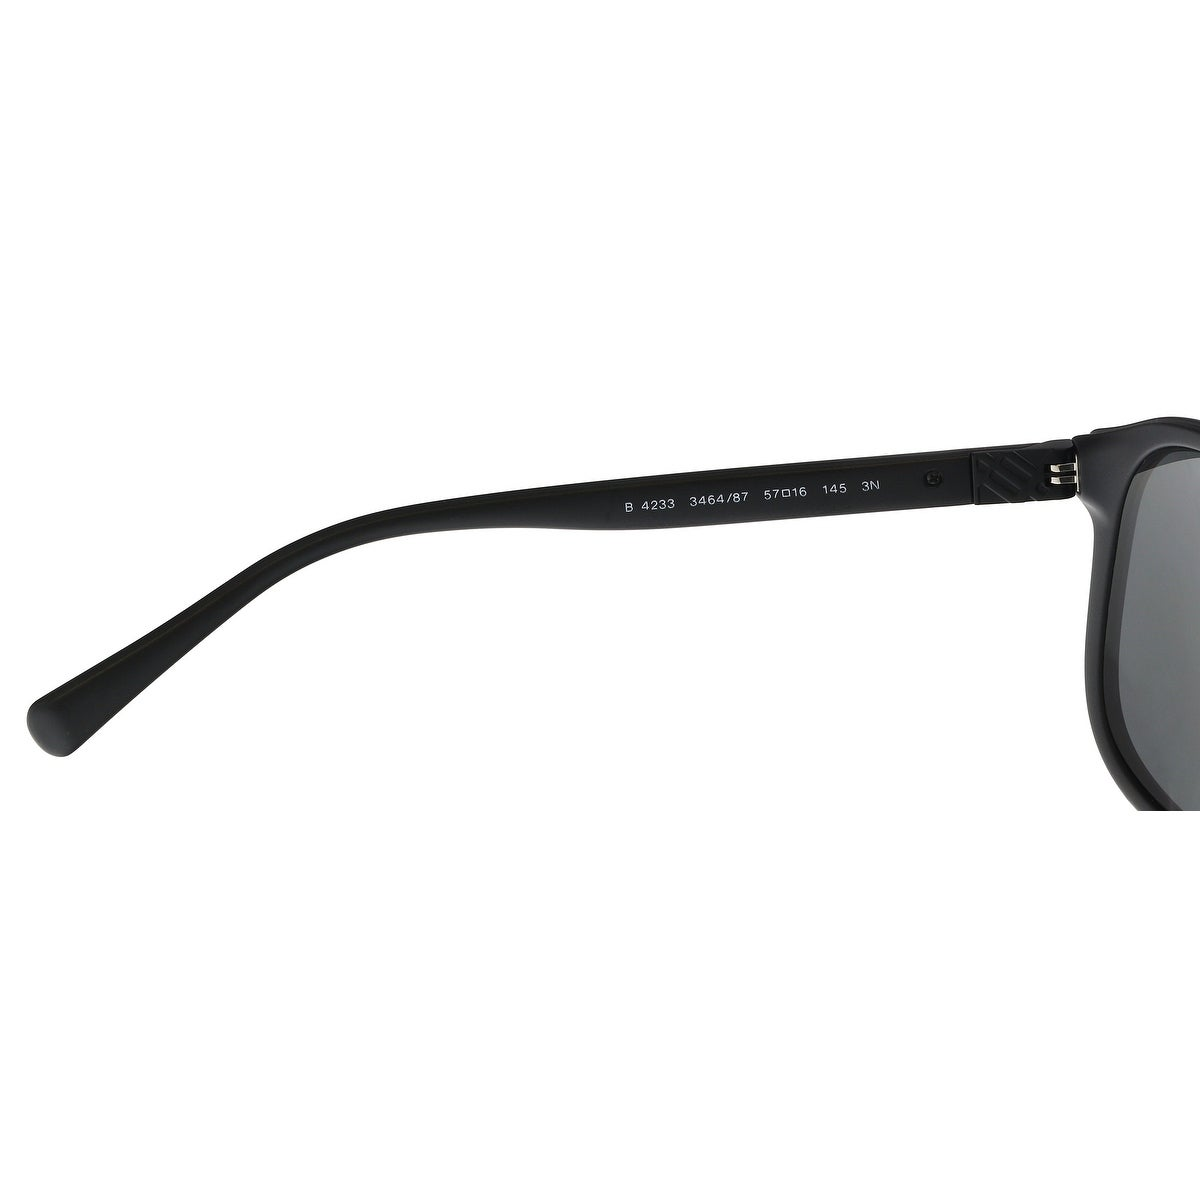 88a84469135 Shop Burberry BE4233 346487 Matte Black Rectangle Sunglasses - 57-16-145 -  Free Shipping Today - Overstock - 21158379